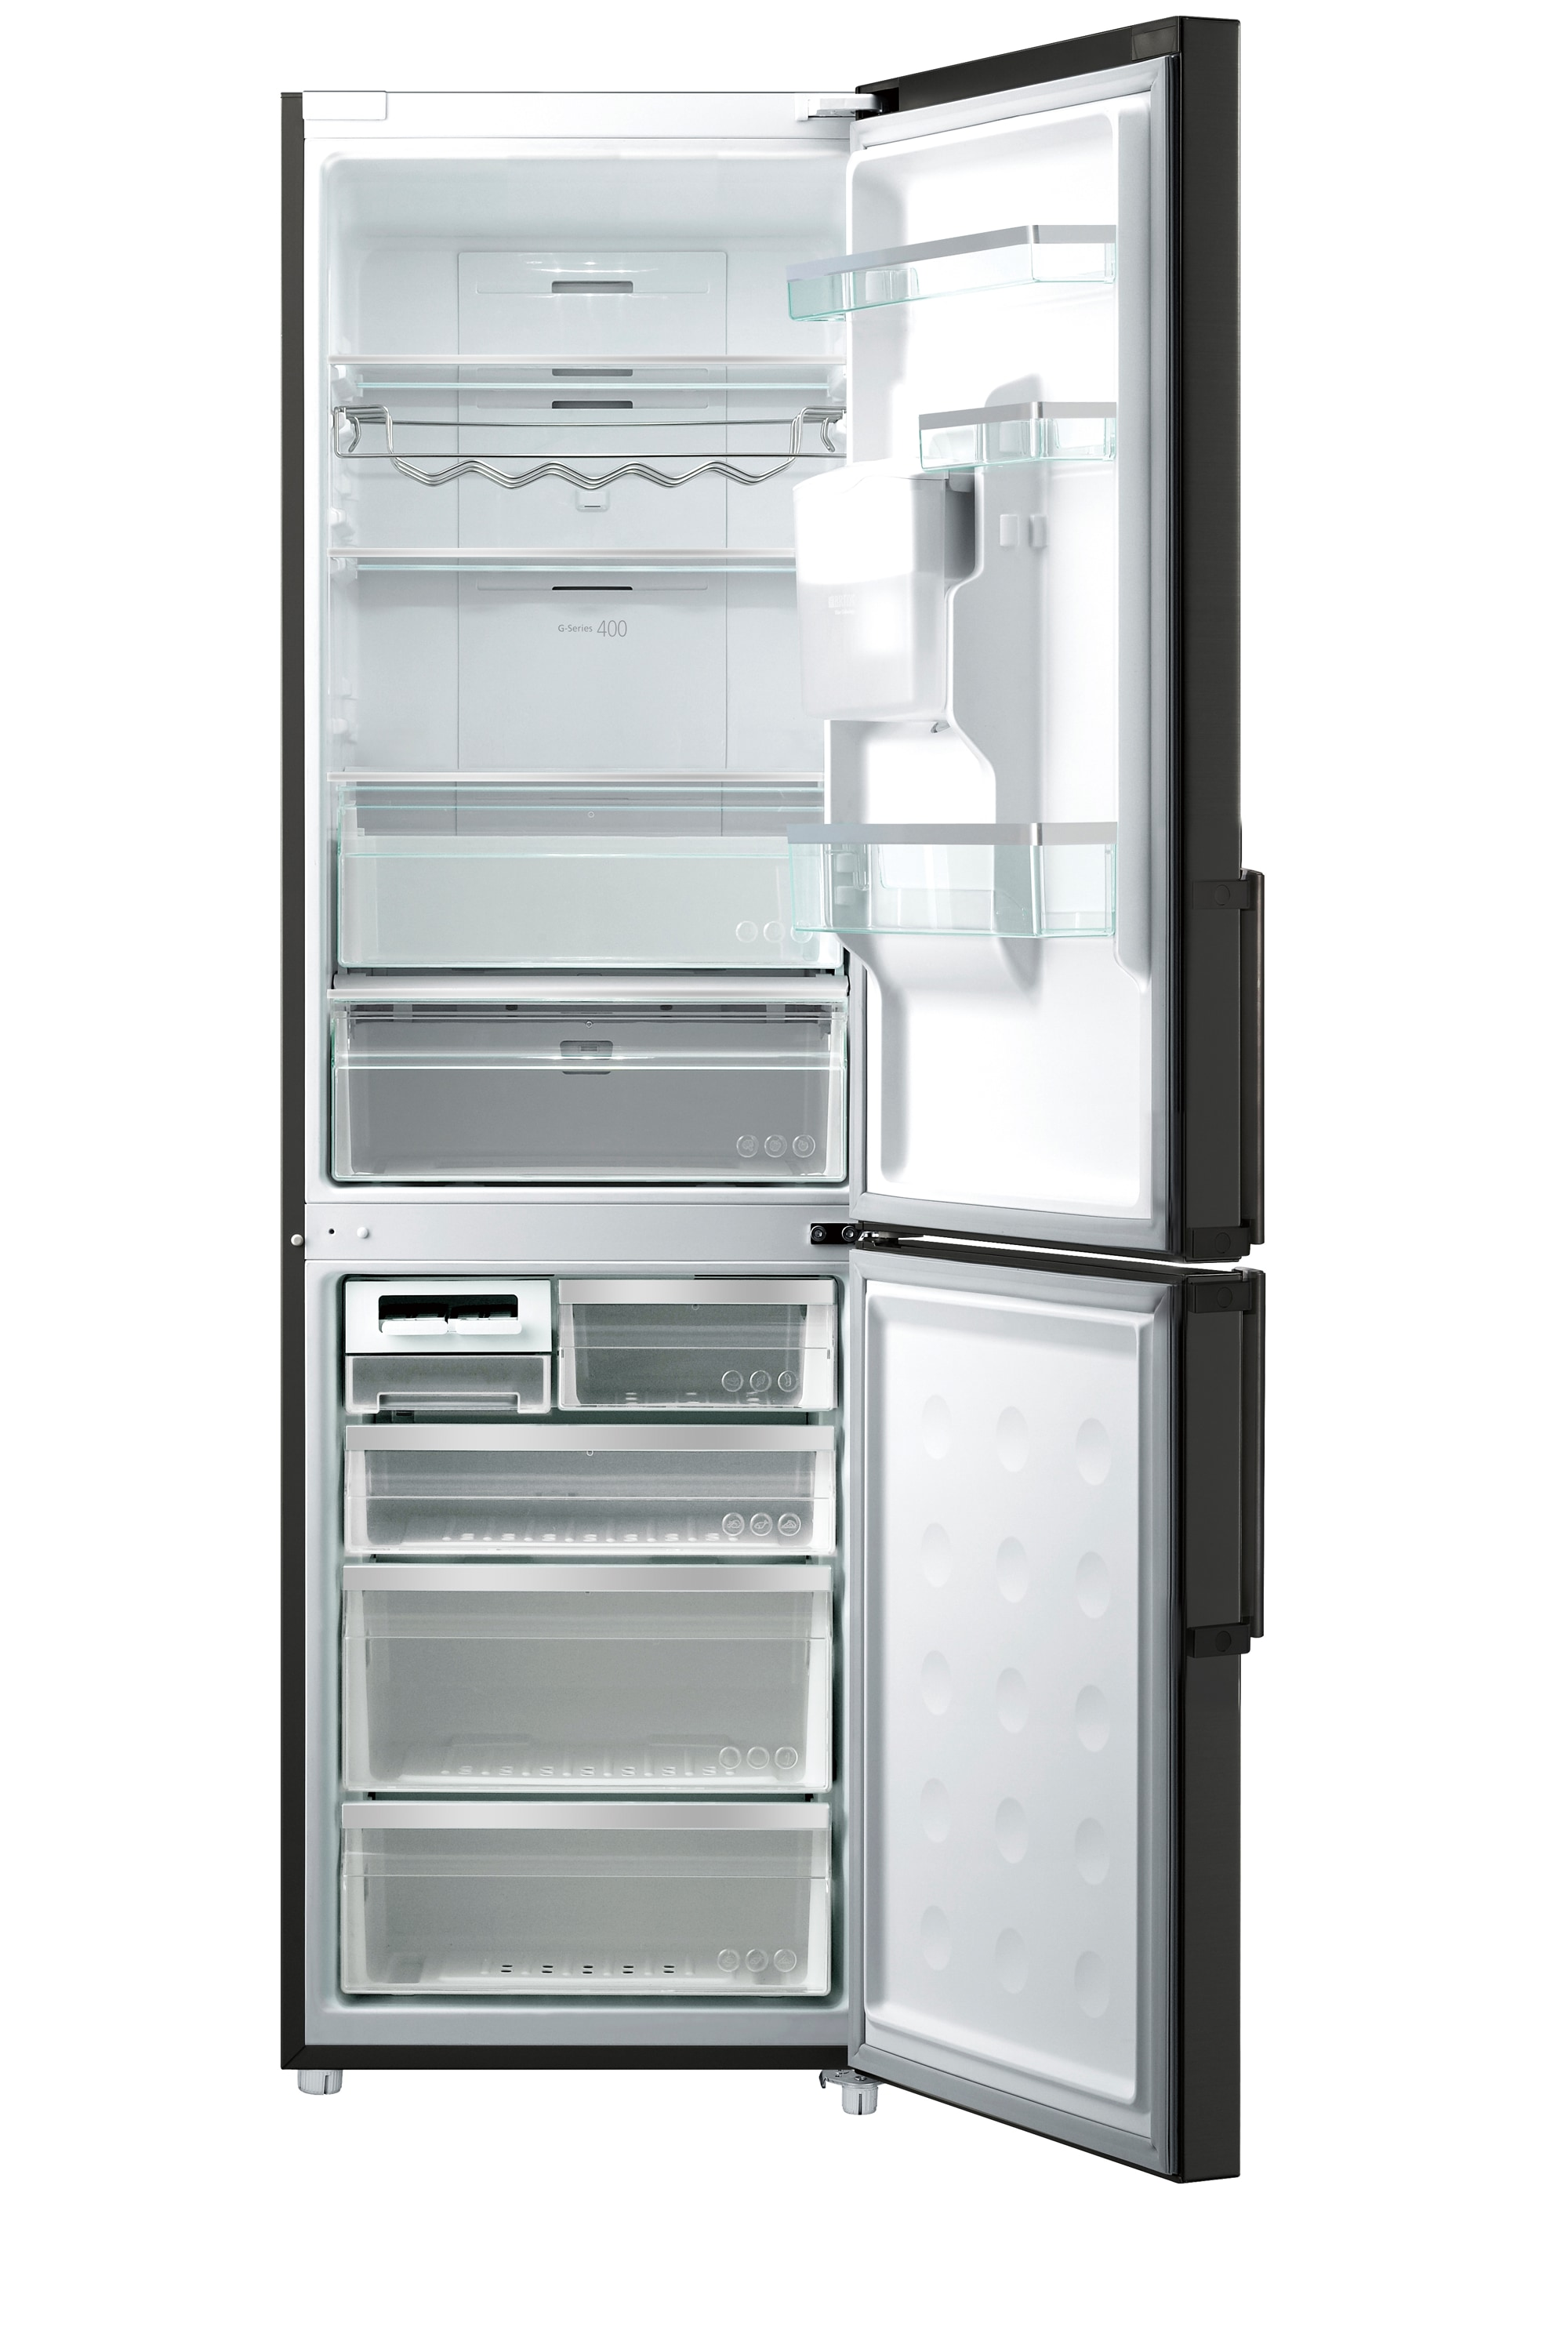 RL58GPEBP G-Series Fridge Freezer